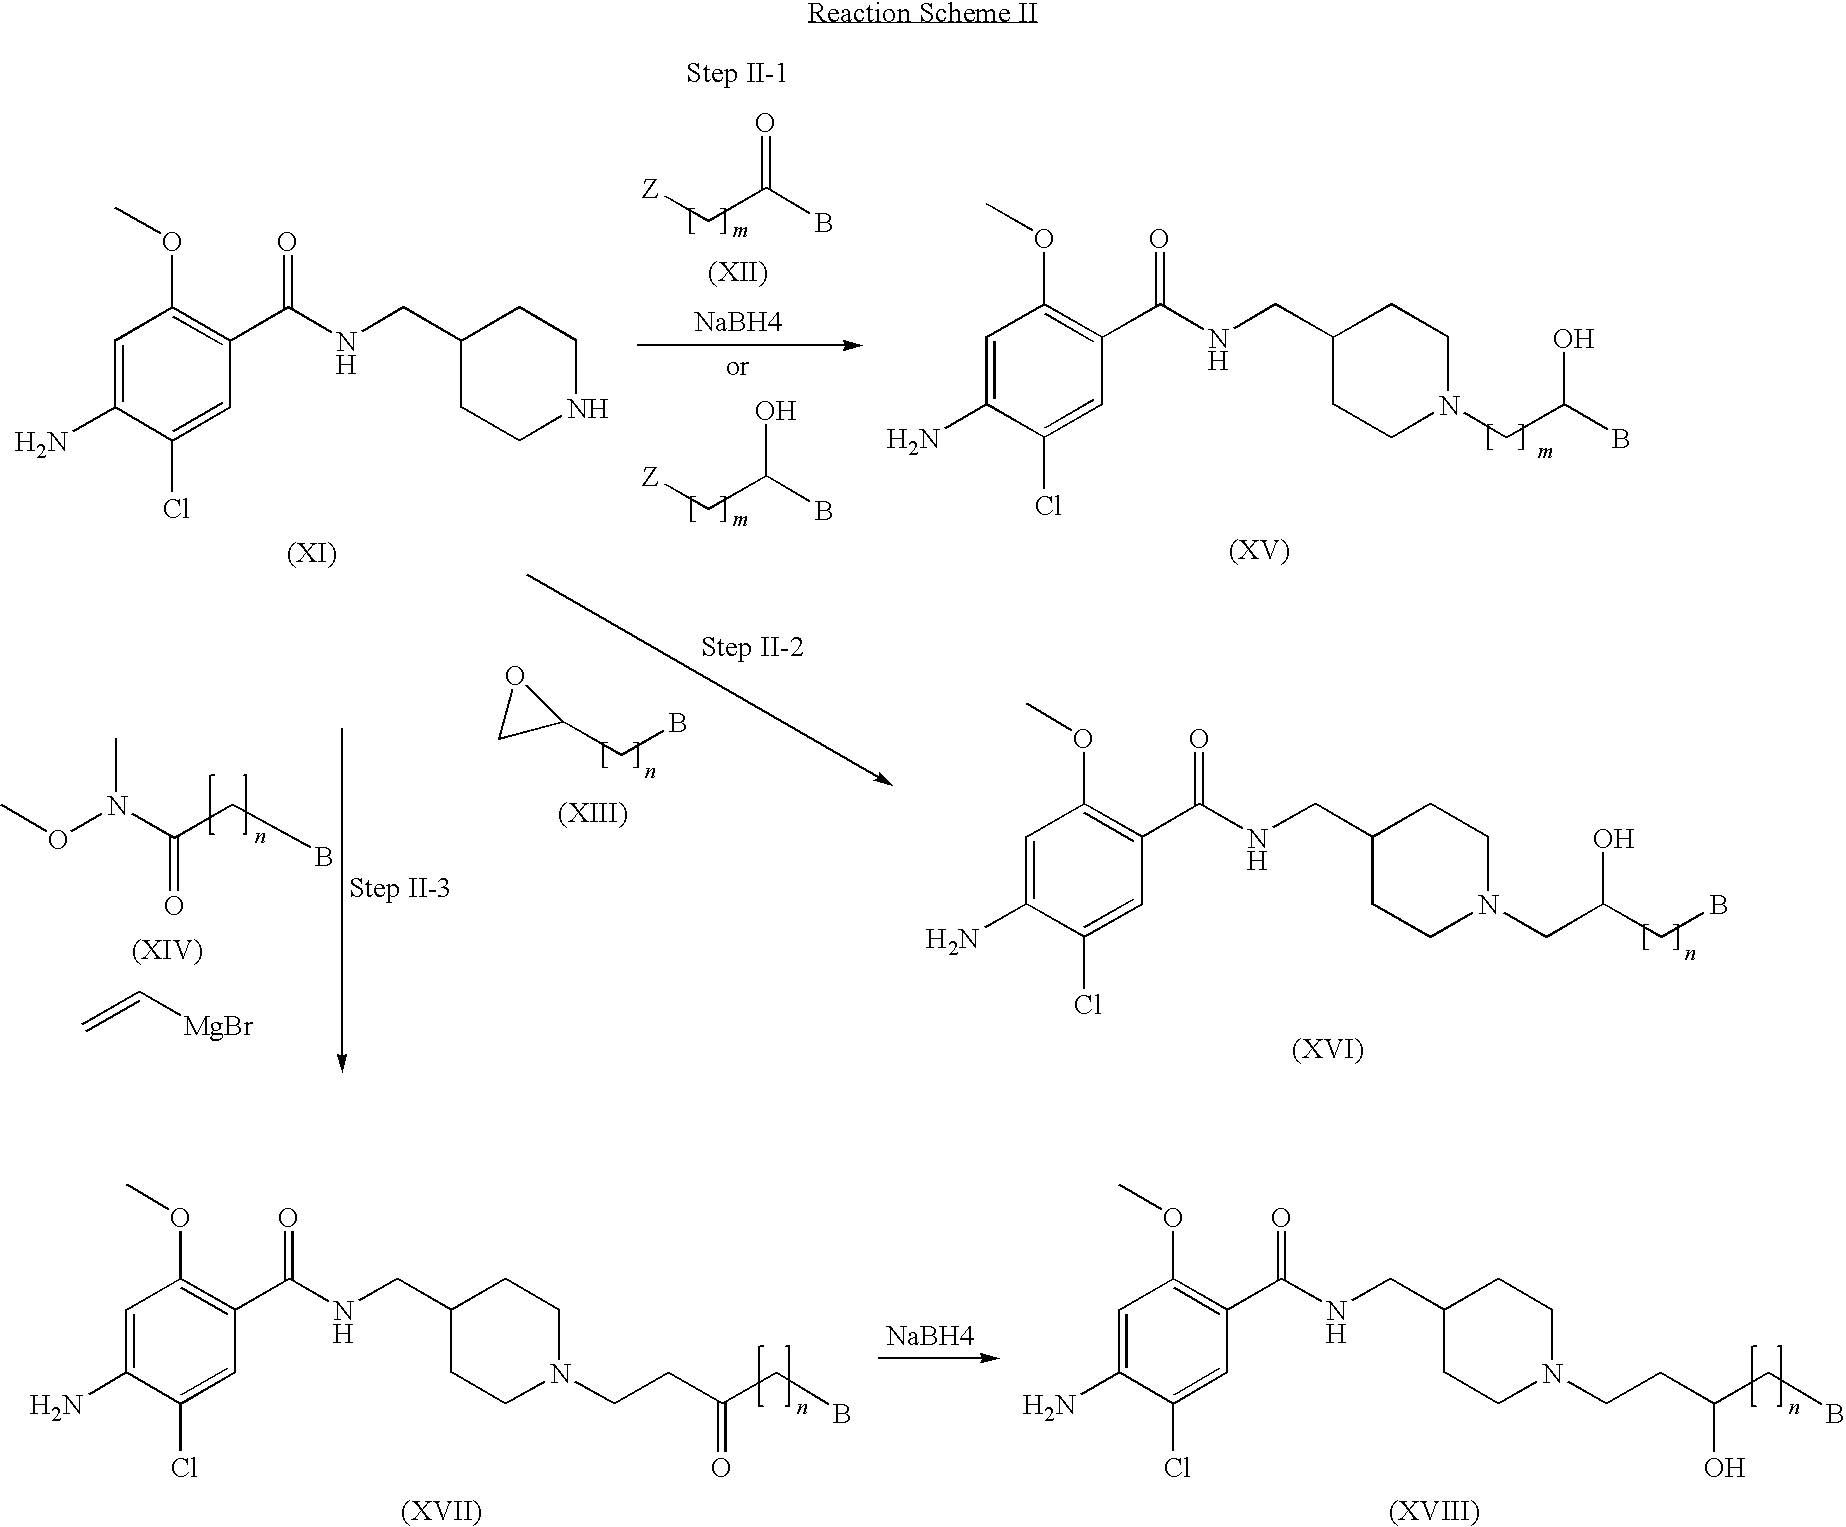 Us8642772b2 Piperidine Compounds Pharmaceutical Composition 57 08 Wiring Diagram Prs Figure Us08642772 20140204 C00013